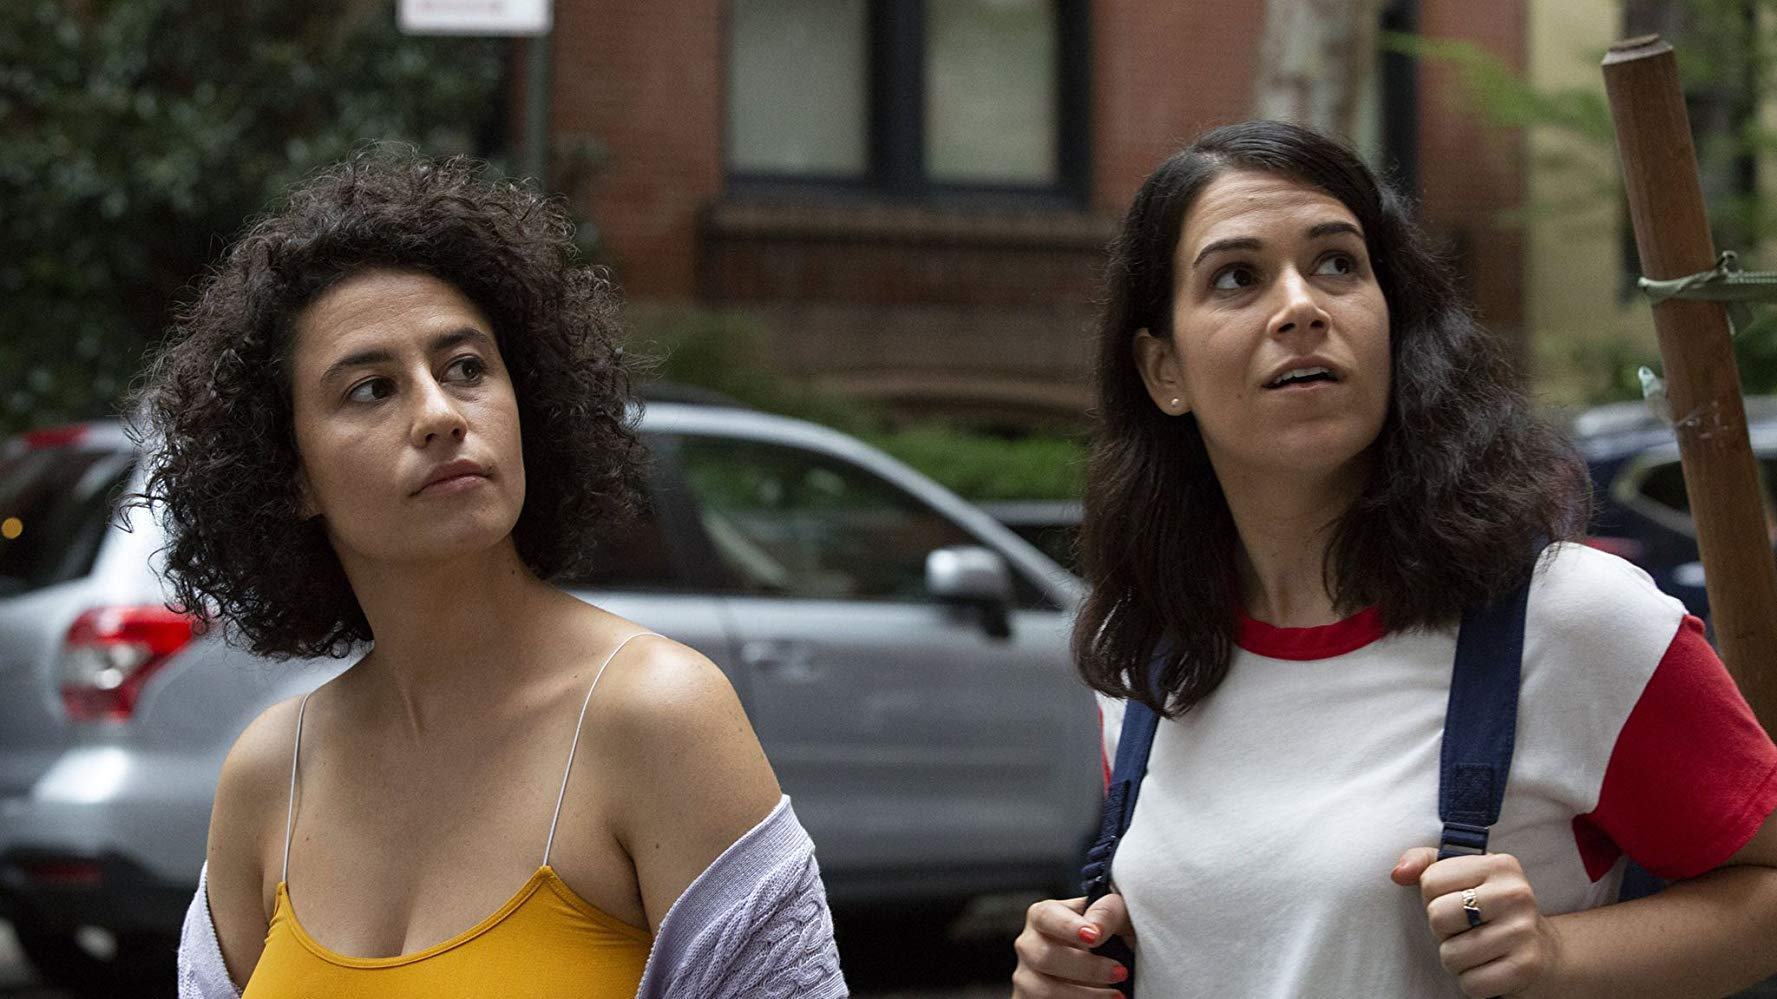 Broad City - Season 5